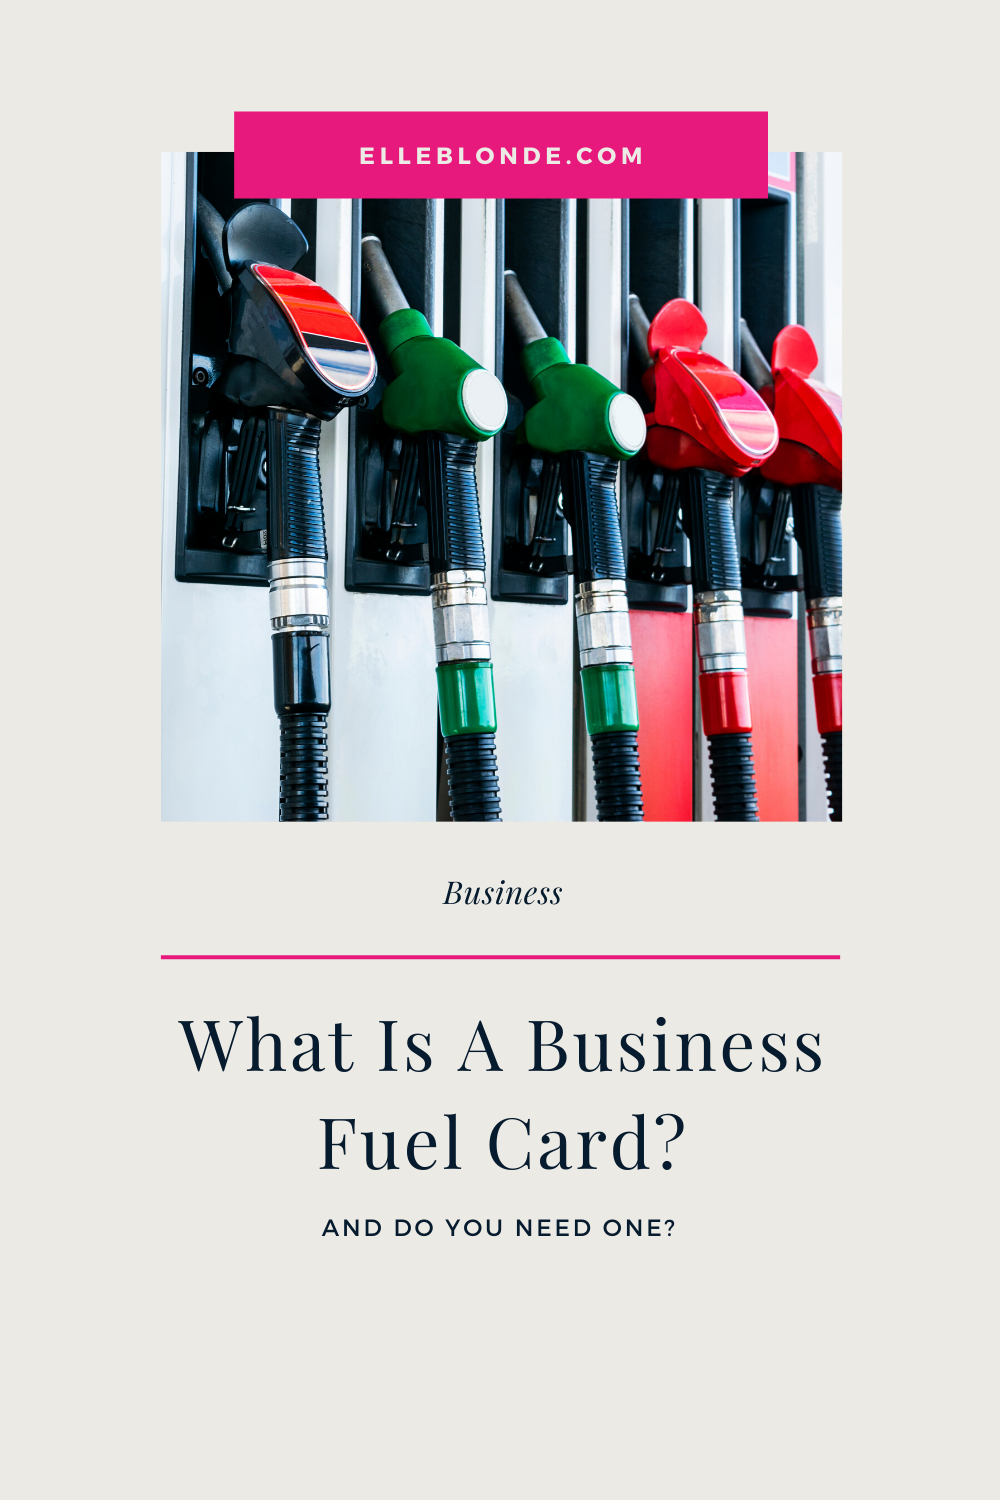 How Does A Business Fuel Card Work Elle Blonde Luxury Lifestyle Destination Travel Food Drink Interiors More Business Cards Fuel